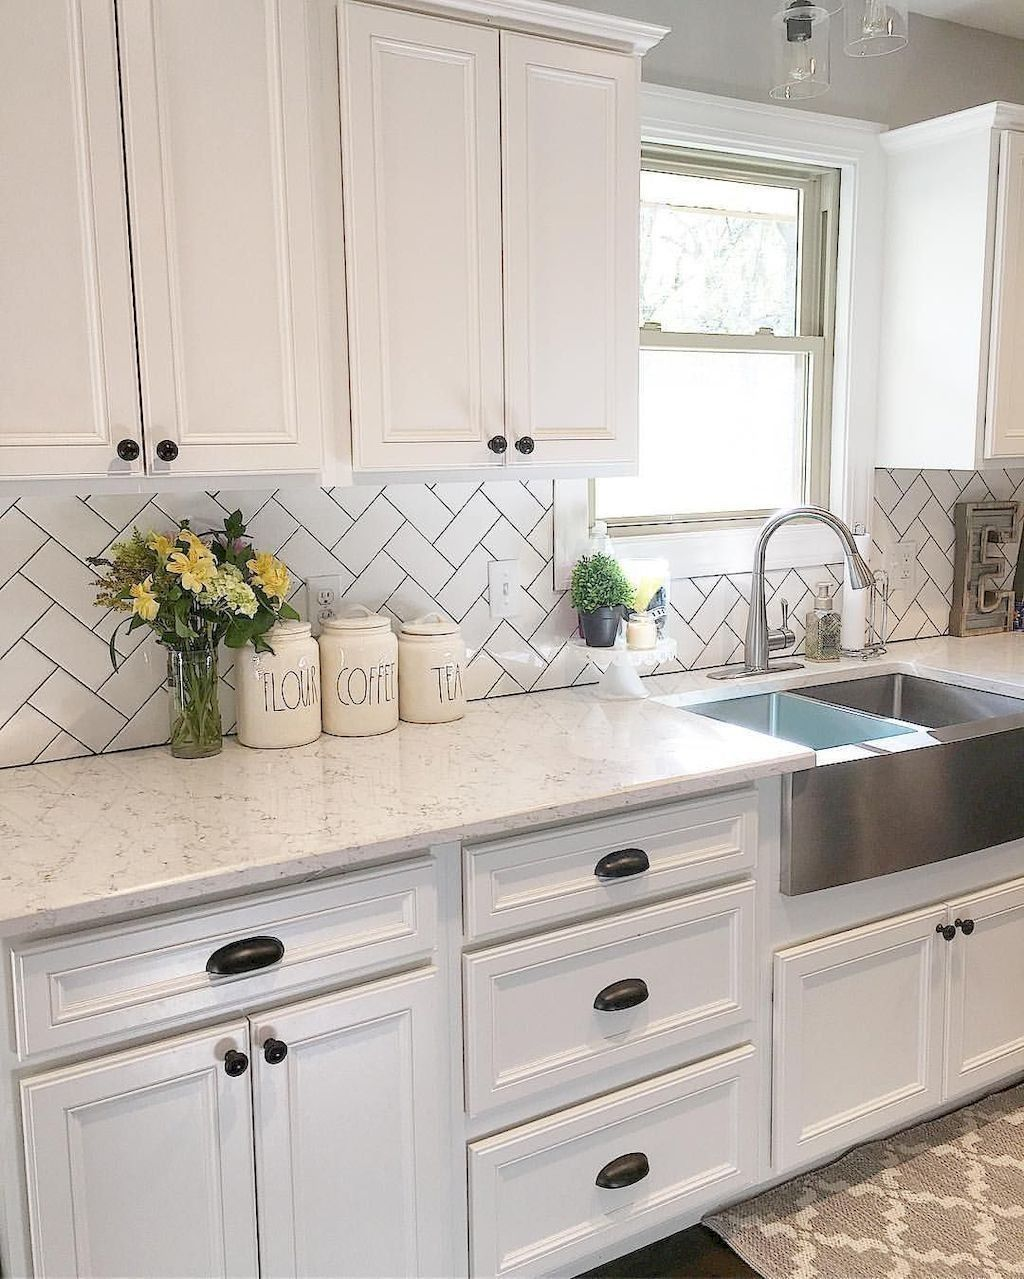 90 Elegant White Kitchen Cabinet Design Ideas Kitchen Cabinets Decor Kitchen Backsplash Designs Kitchen Cabinet Design